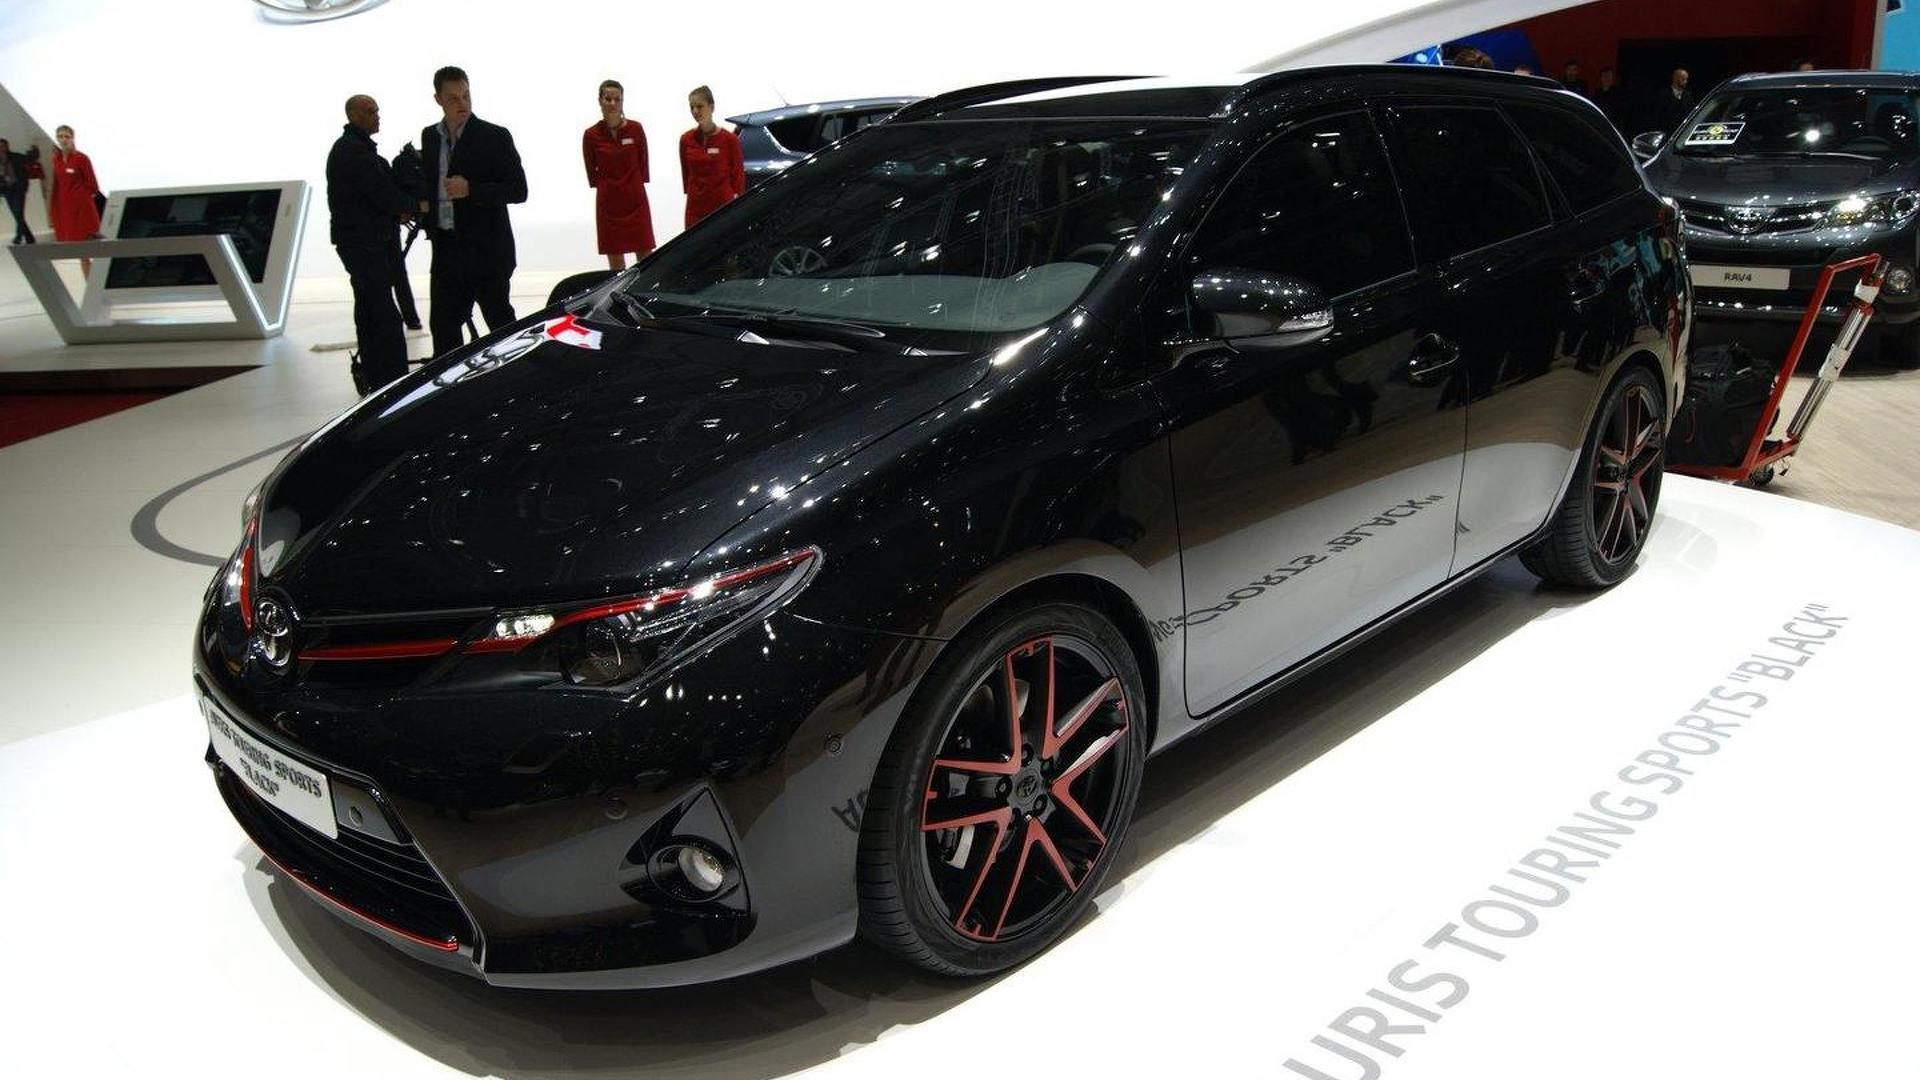 Toyota Auris Touring Sports Black, RAV4 Premium and RAV4 Adventure concepts debut in Geneva